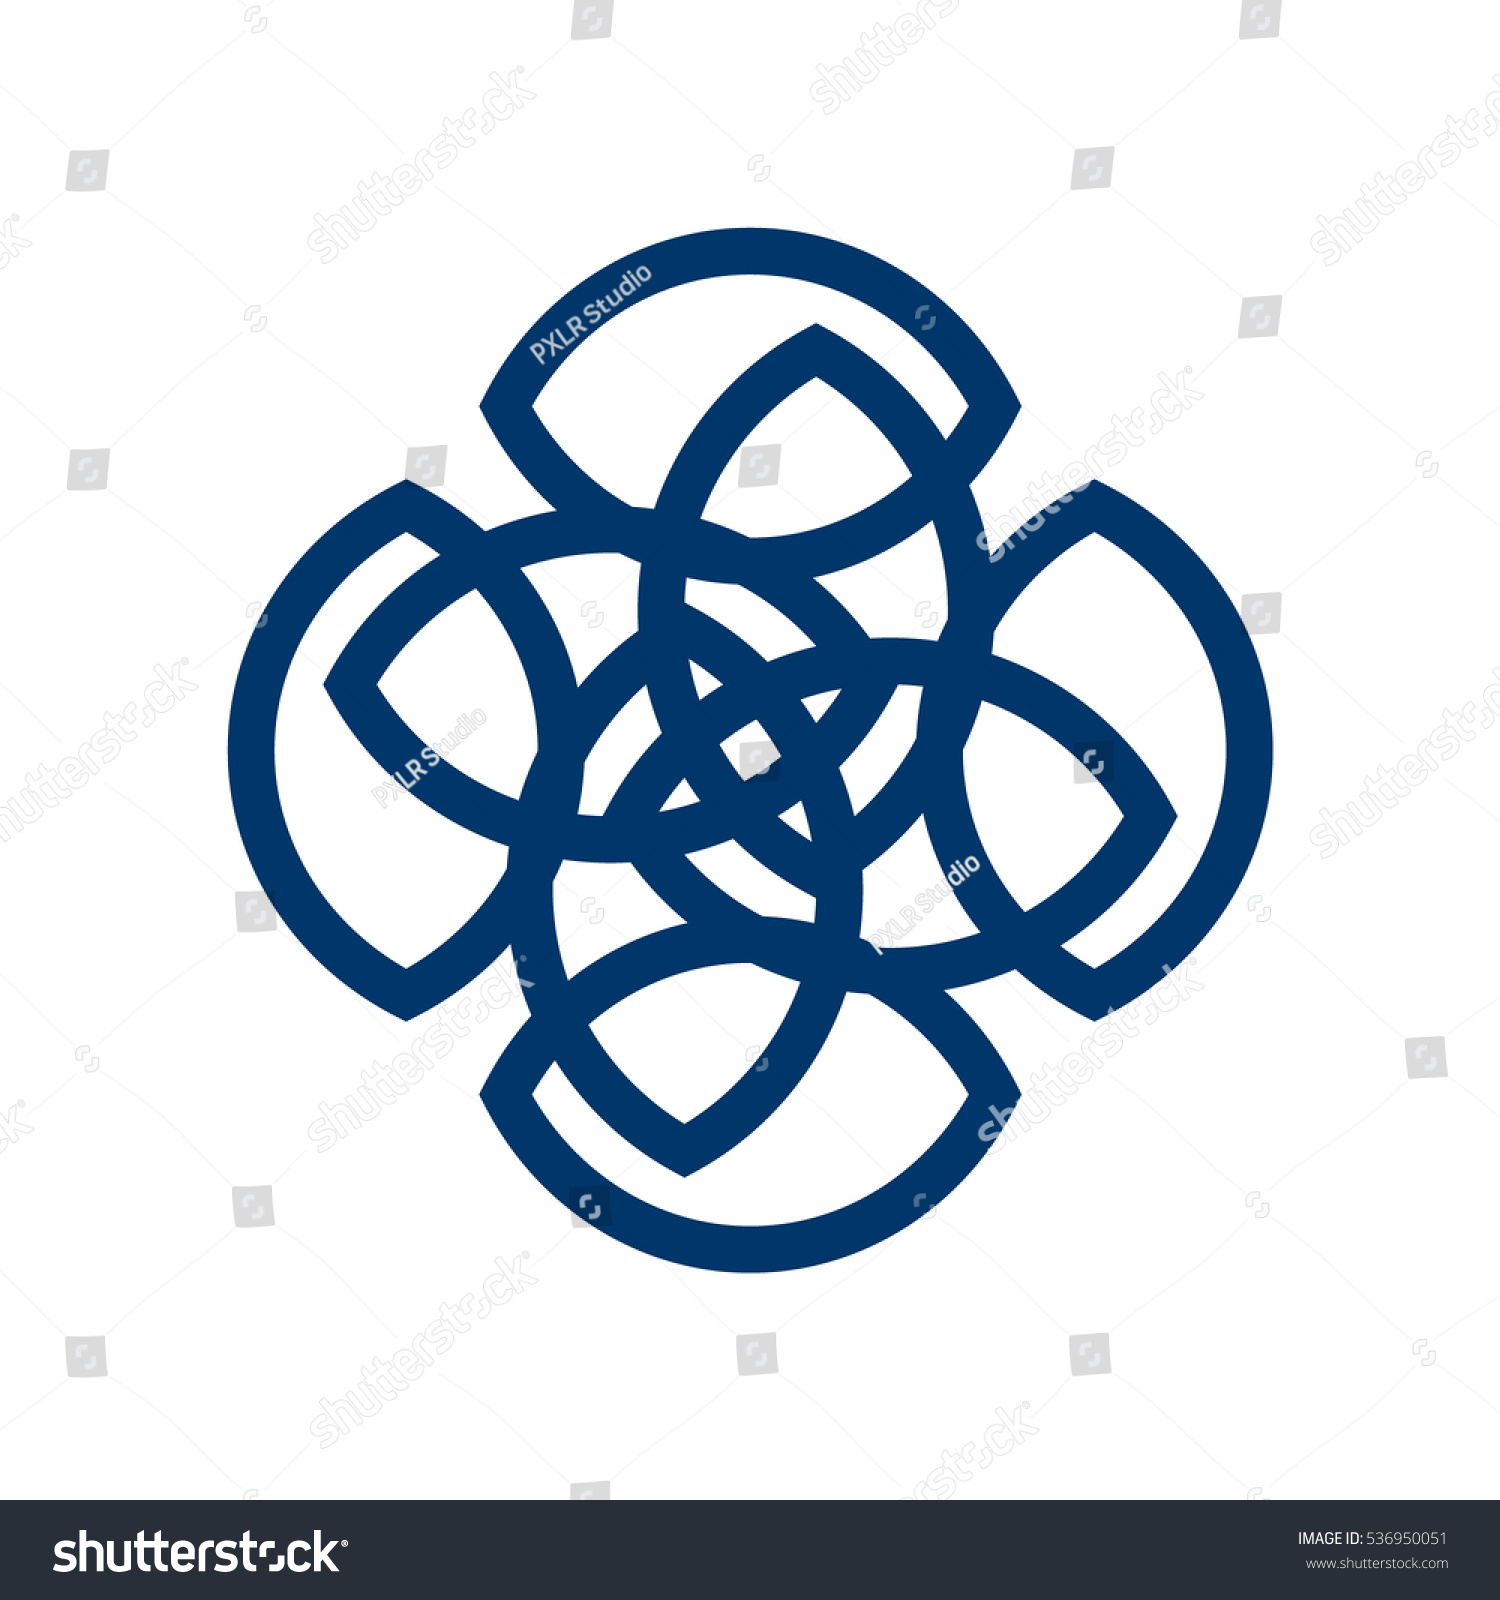 Abstract vector celtic irish scottish knot stock vector 536950051 abstract vector celtic irish scottish knot stock vector 536950051 shutterstock buycottarizona